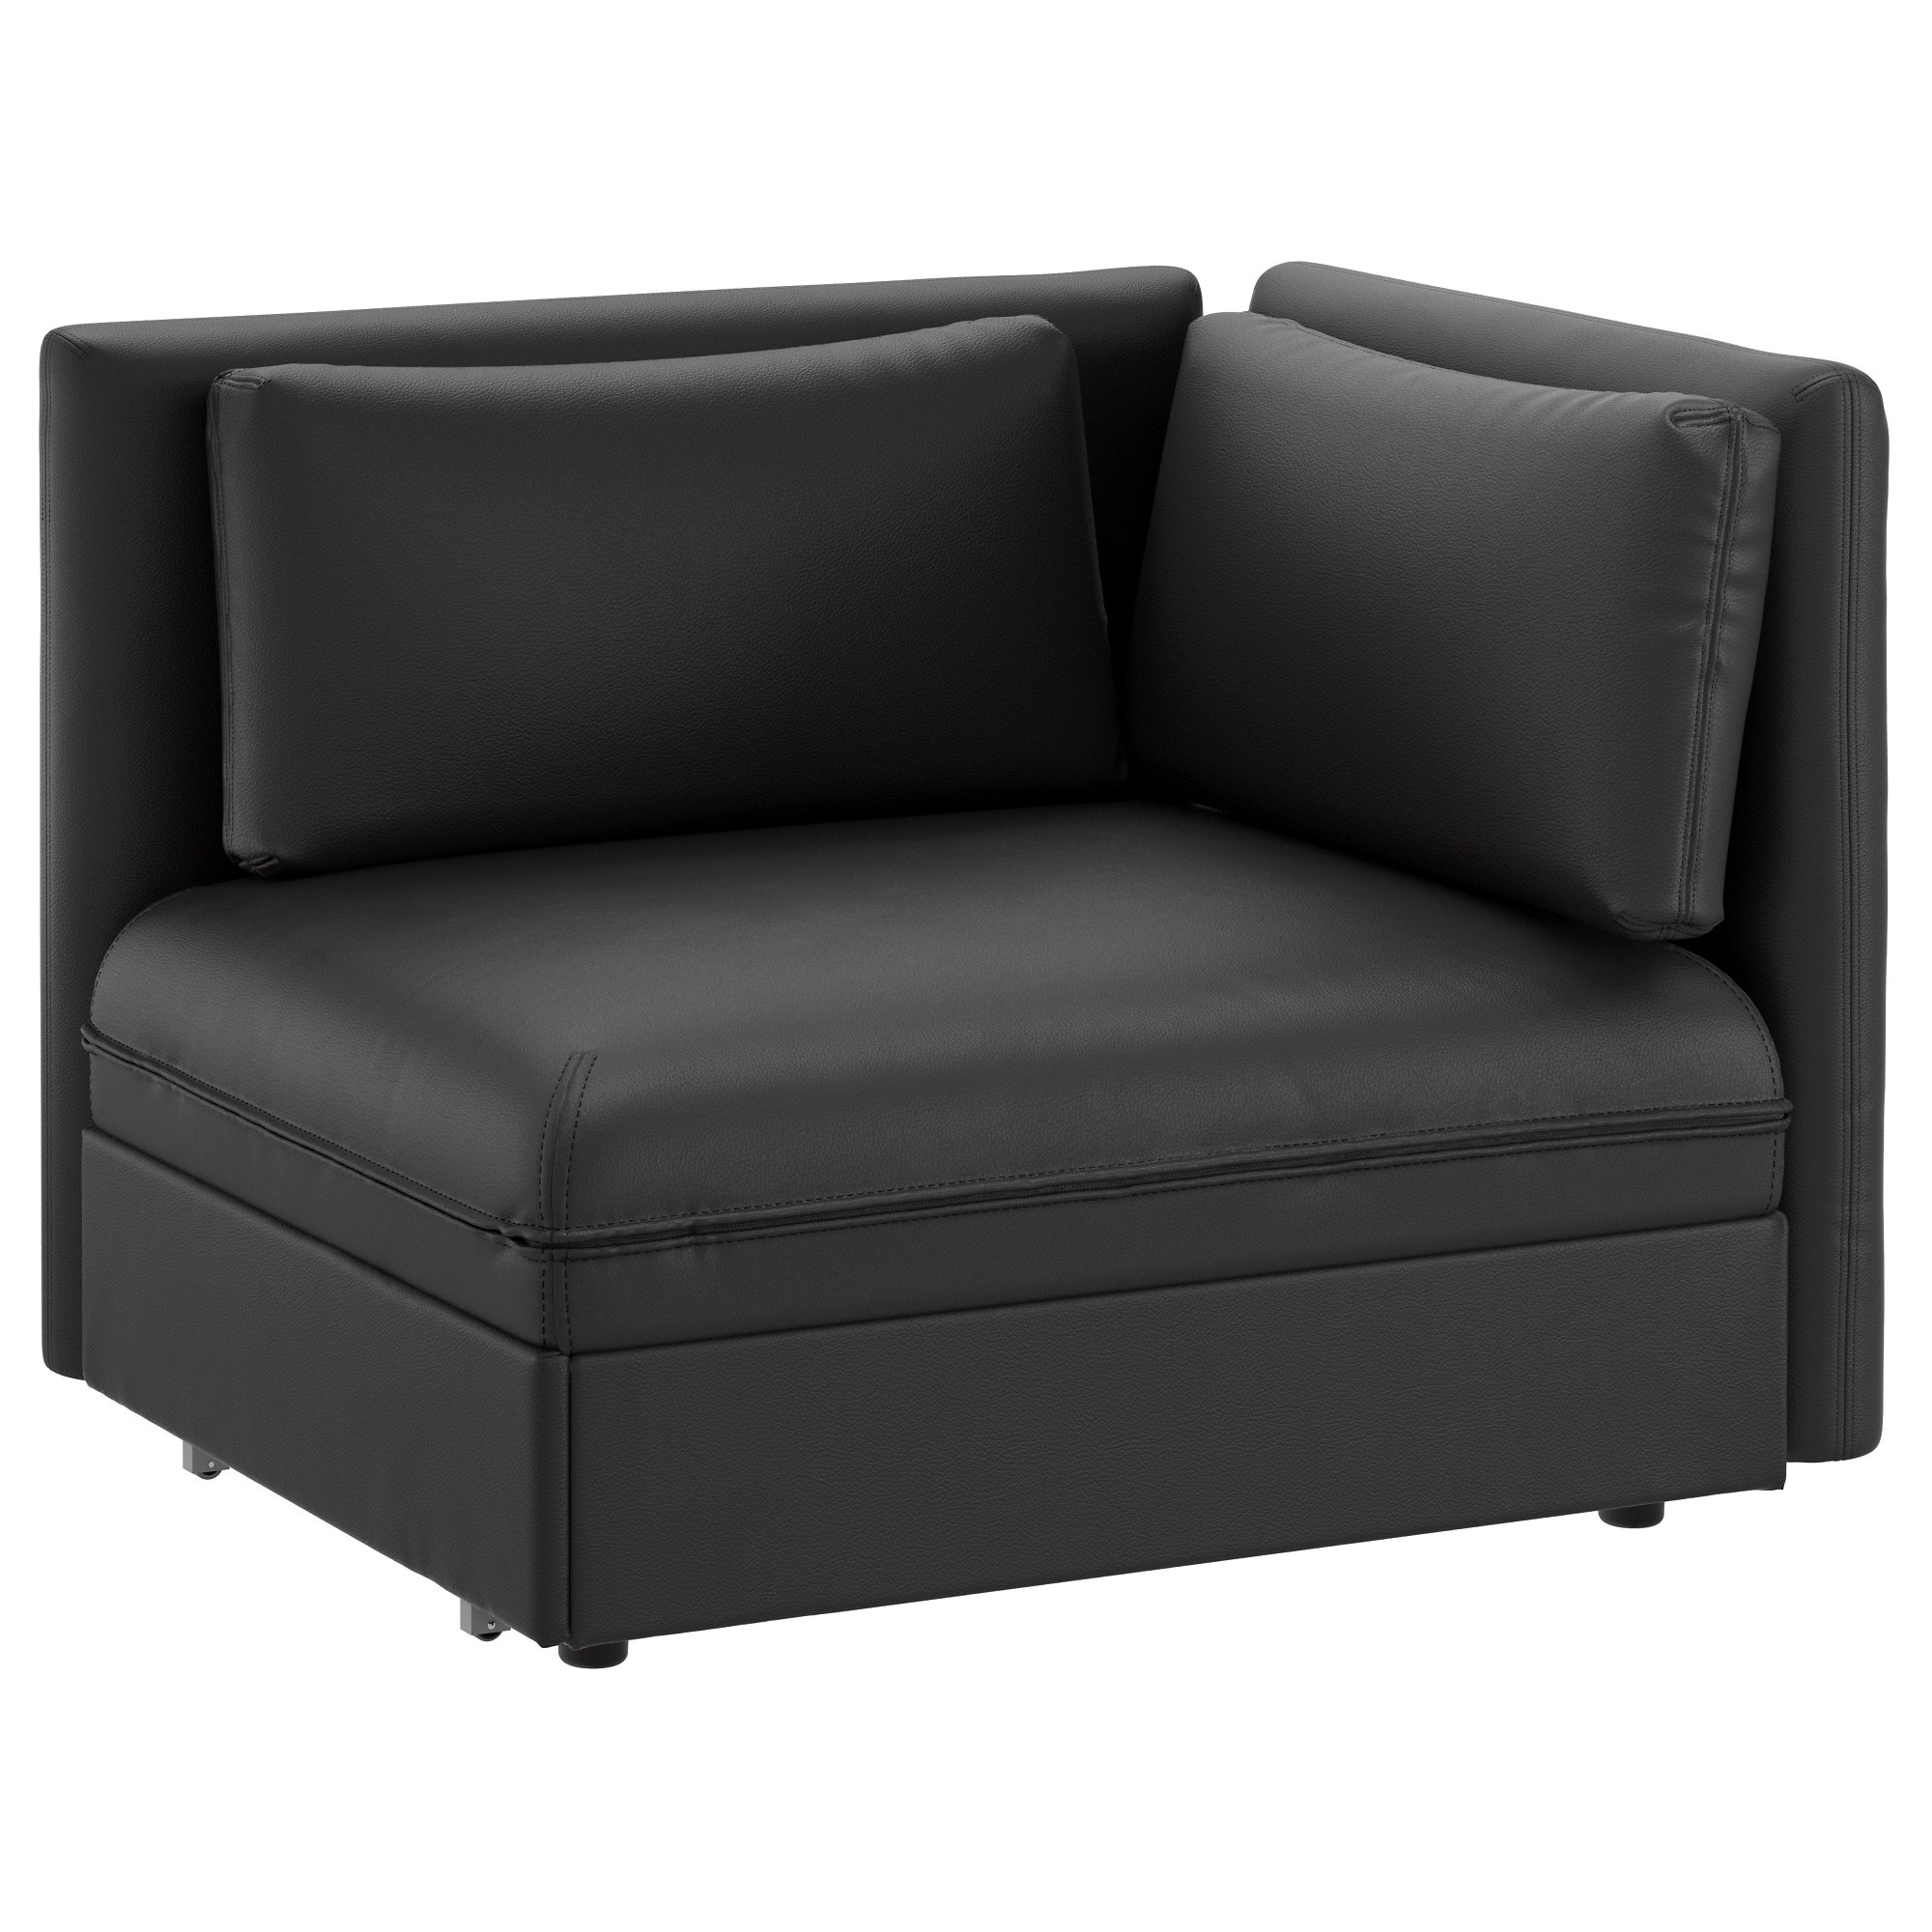 Most Current Modular Sofas & Sectional Sofas (View 18 of 20)